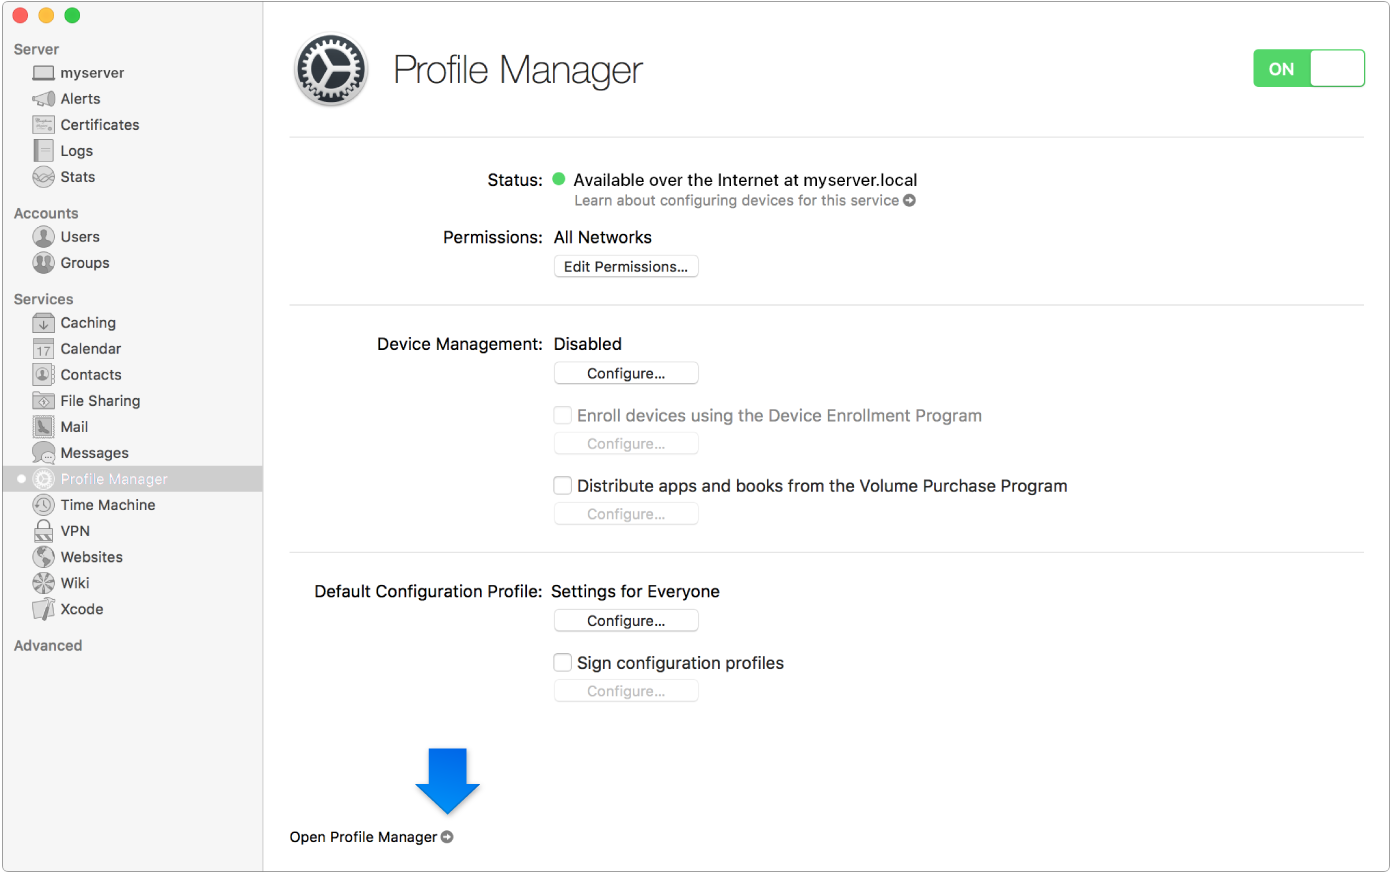 Arrow indicating link to Profile Manager web app